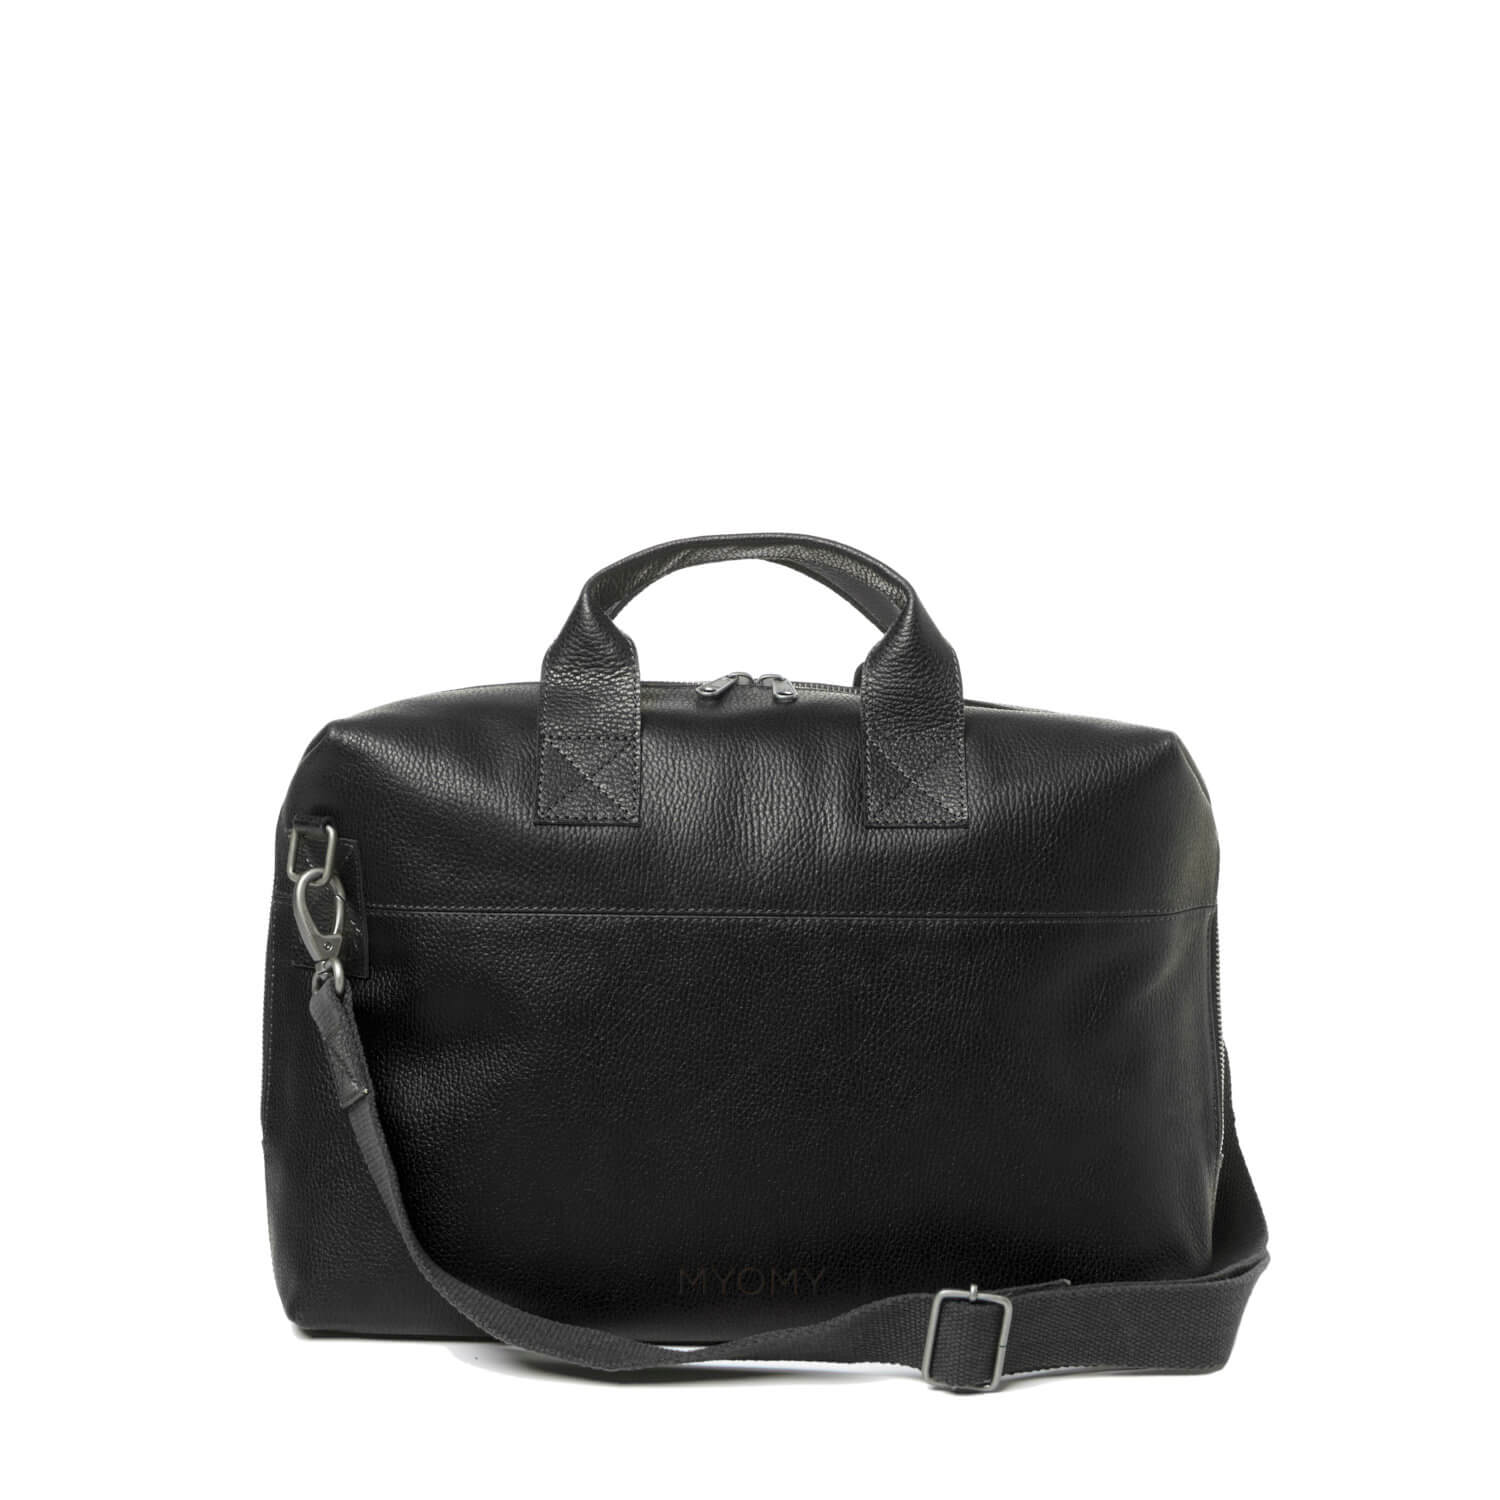 MY PHILIP BAG Business bag – rambler black